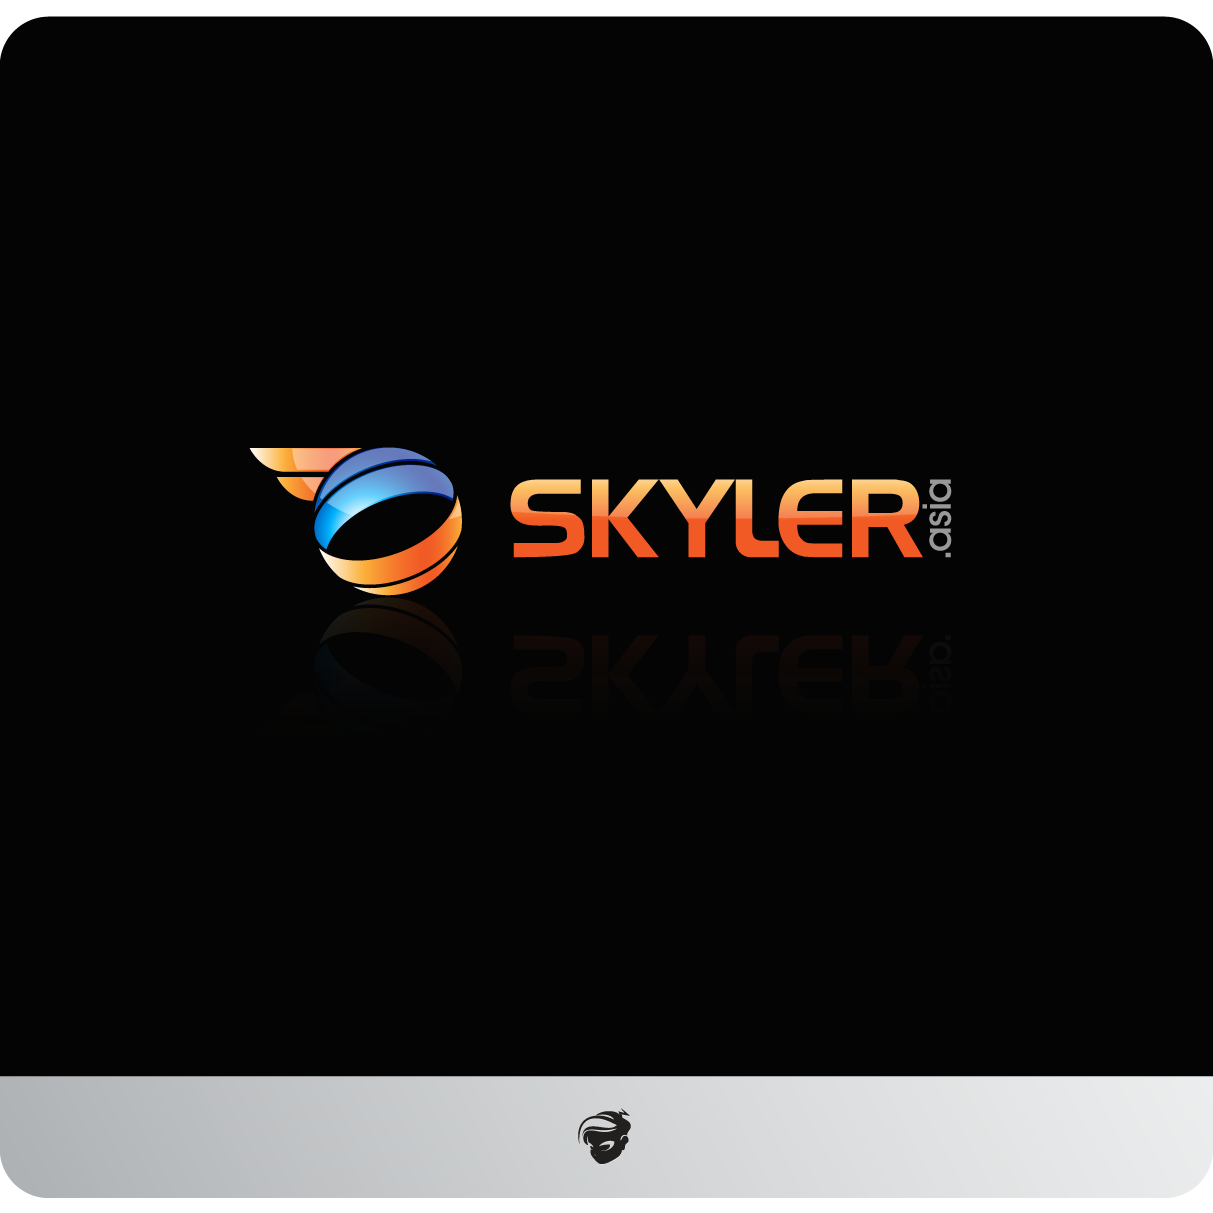 Logo Design by zesthar - Entry No. 112 in the Logo Design Contest Artistic Logo Design for Skyler.Asia.